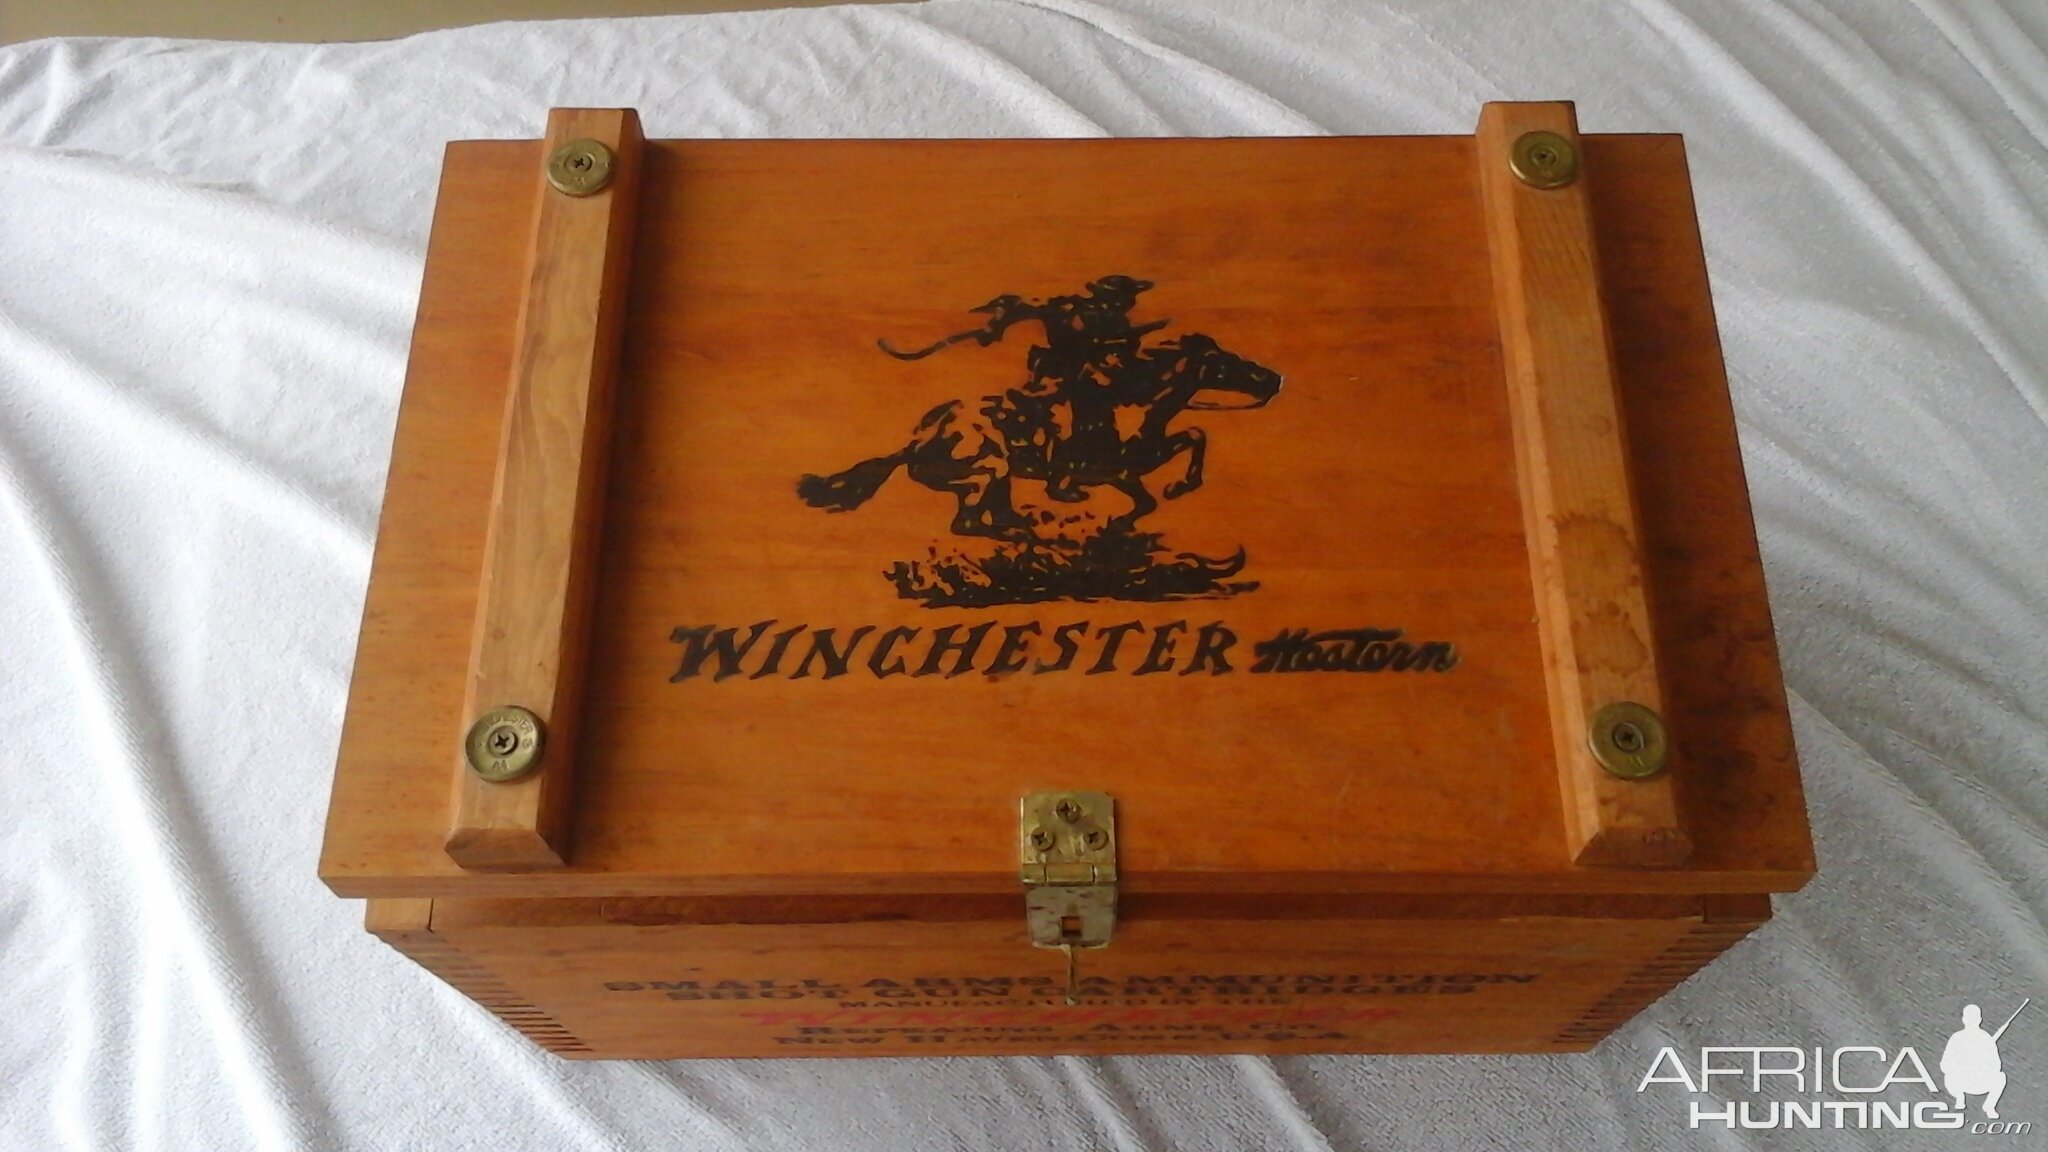 Winchester Vintage Wooden Hunting Ammo Box Hunting